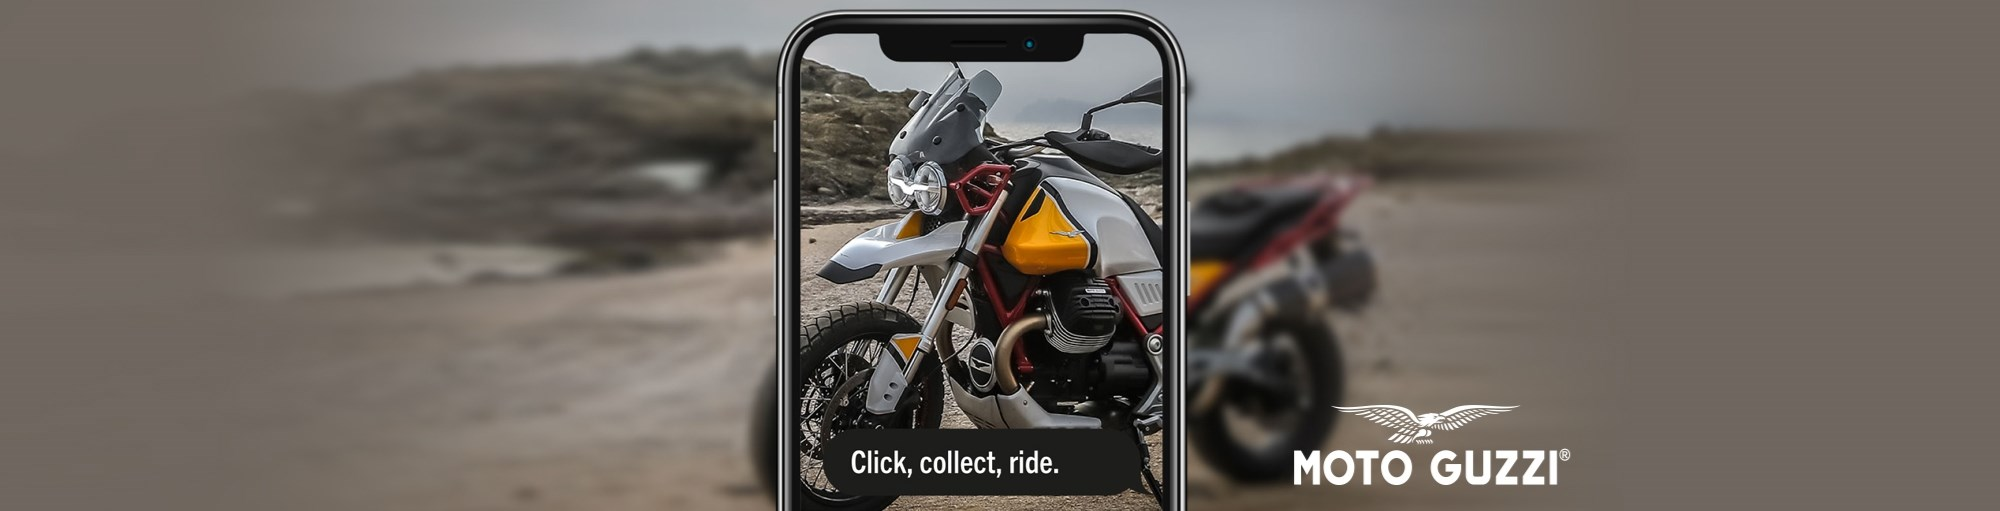 Moto Guzzi Click and Collect